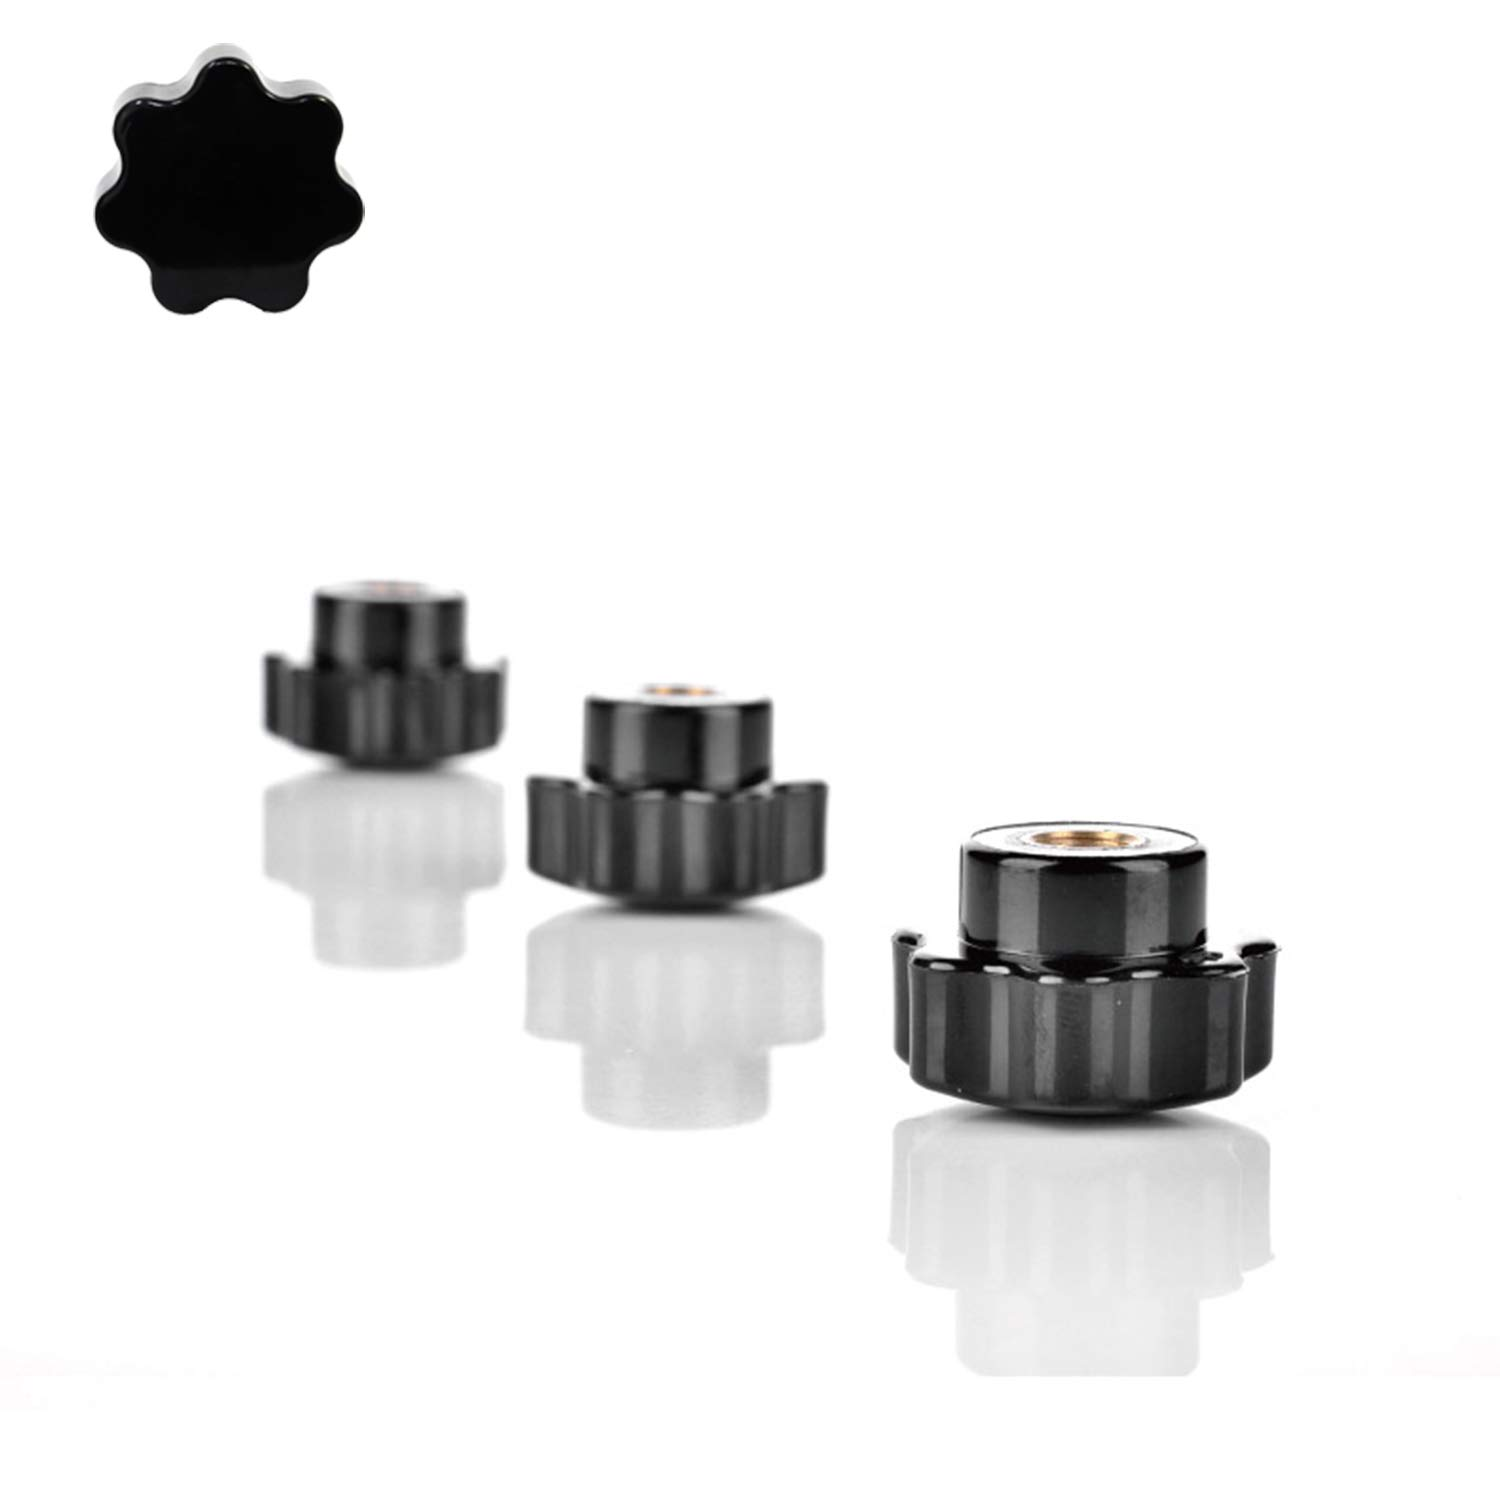 YouU 15 Pack M6 Knurled Thread Clamping Knob,Black Plastic Screw-On Handle Clamping Knob